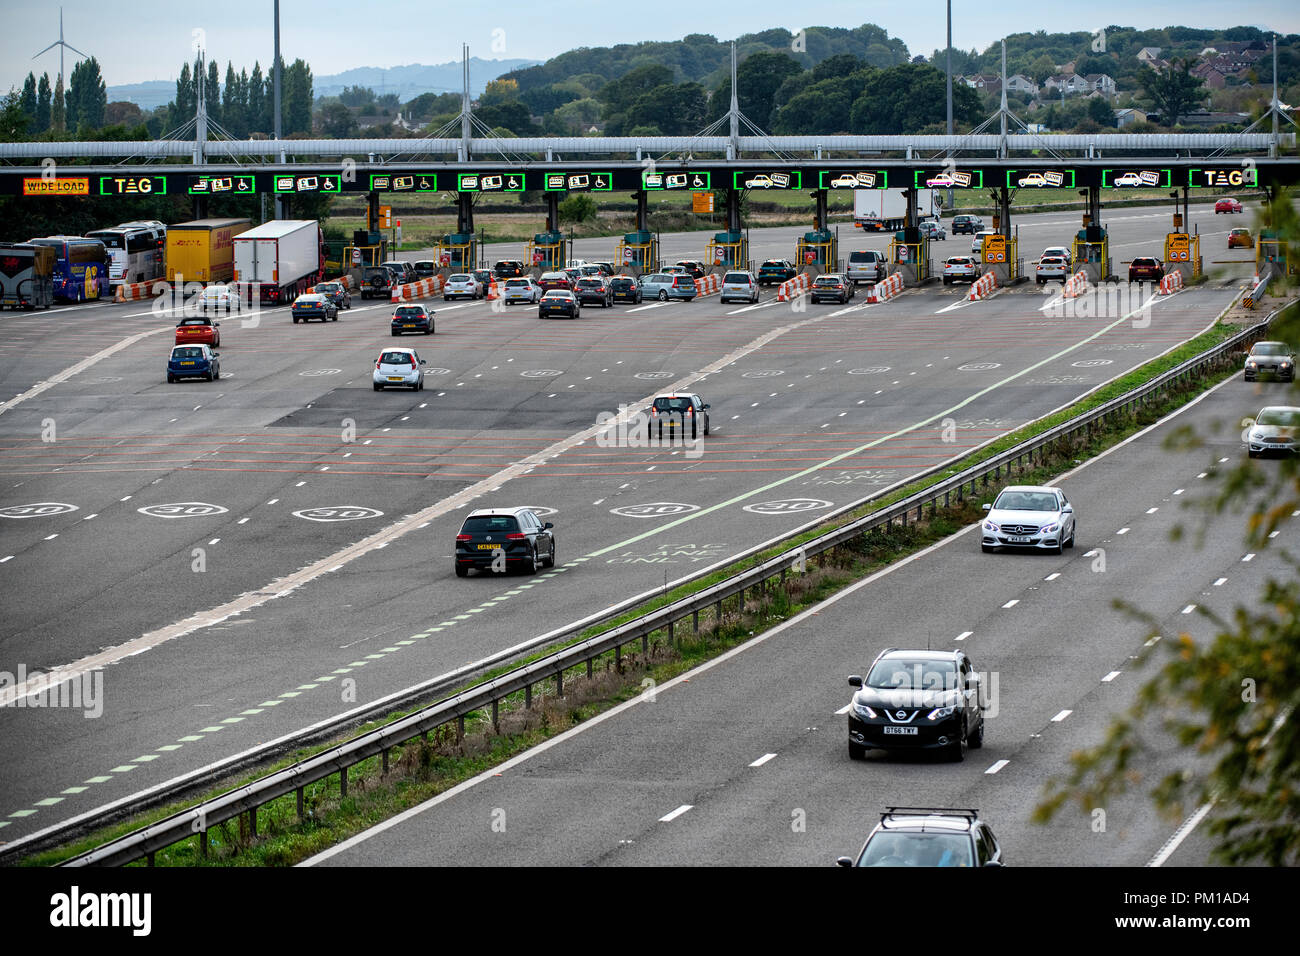 The M4 motorway west-bound toll plaza on the Second Severn Crossing renamed the Prince of Wales Bridge. Tolls are due to be scrapped in December 2018. - Stock Image